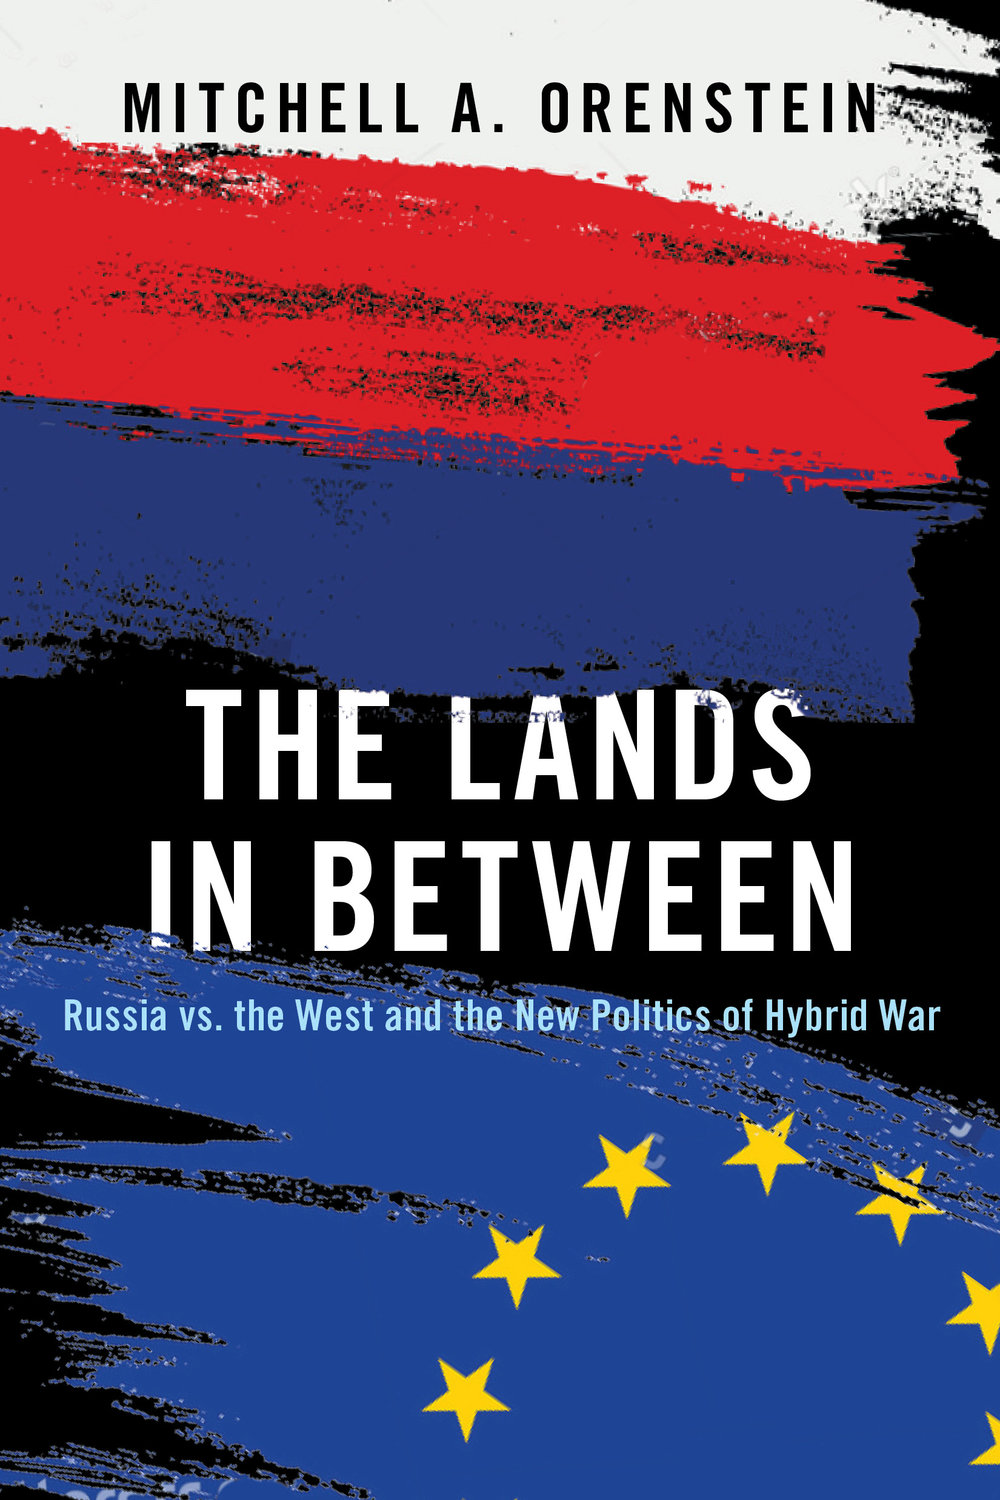 """- """"A slender, astute study of Russia's nefarious modus operandi…clarifies many of the bewildering contradictions that directly affect European and American politics."""" -- Kirkus Reviews• Explains why Russia launched its hybrid war on the West and how Western institutions responded• Offers original analysis of how hybrid war affects domestic politics in Central and Eastern Europe, Europe and North America• Explores the paradox that in states divided by hybrid war, leading politicians often seek to profit from both sides"""